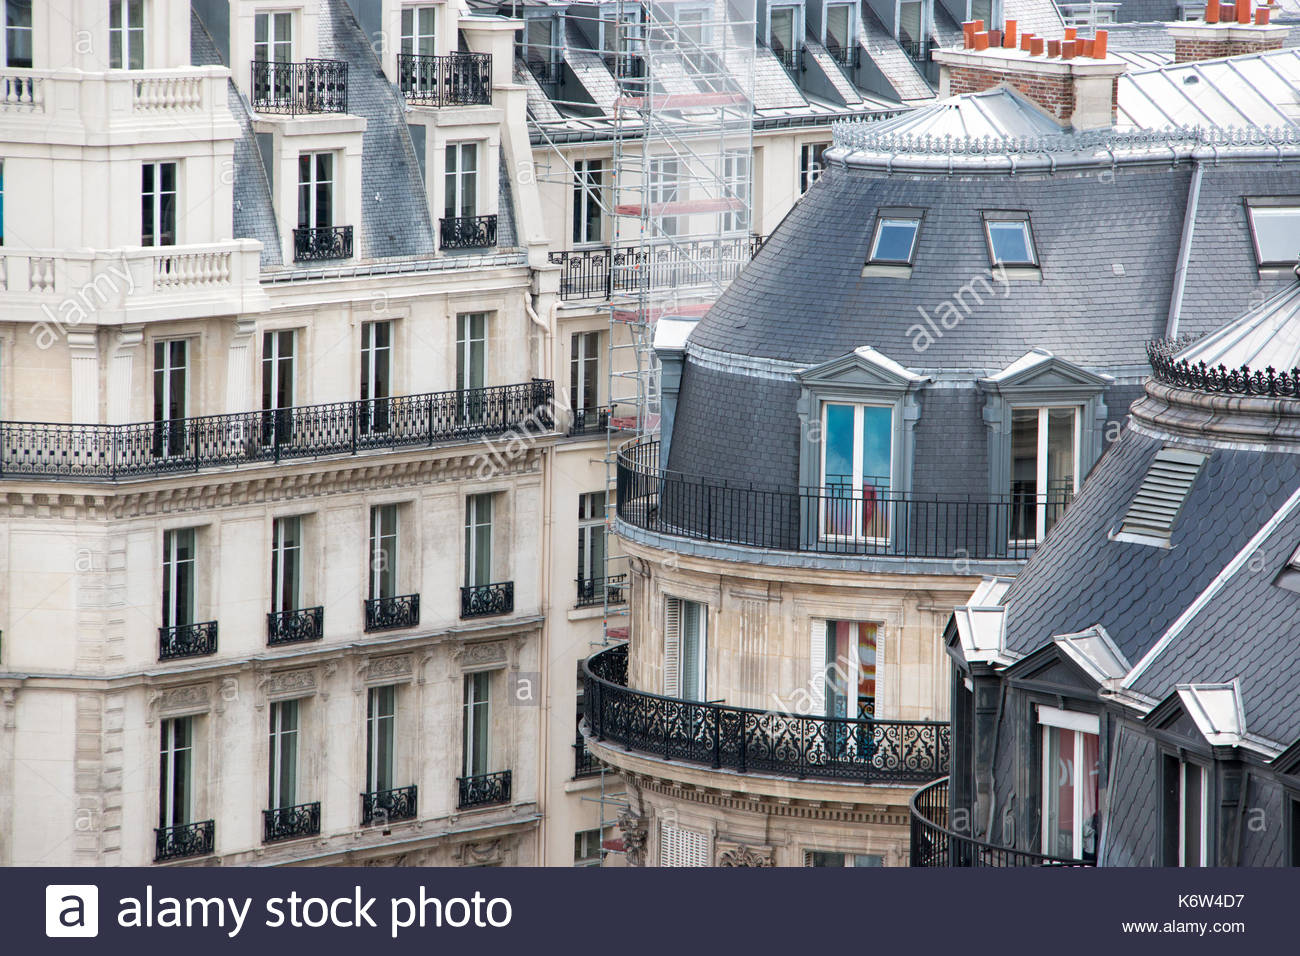 View of Haussmann style buildings in Paris. - Stock Image